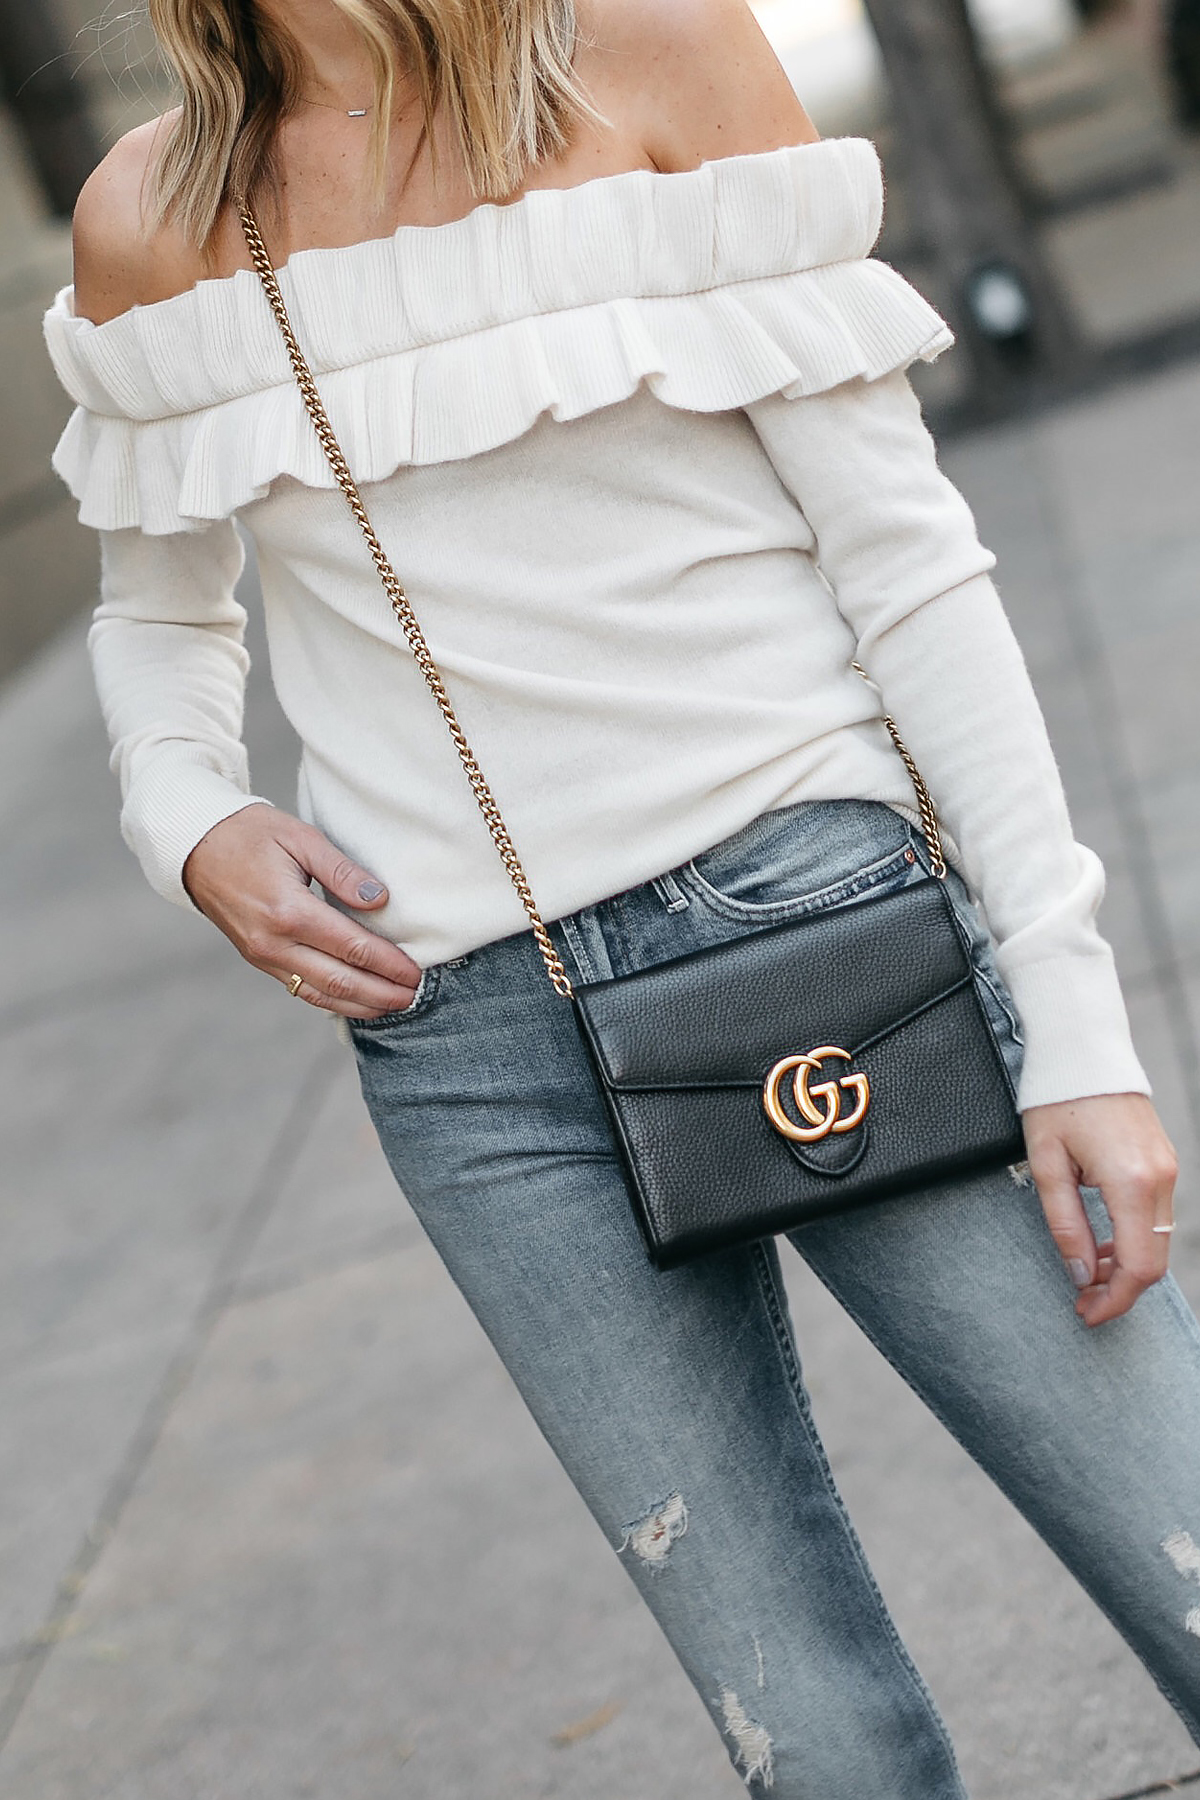 Club Monaco Ruffle Off-the-Shoulder Sweater Gucci Marmont Handbag Denim Ripped Jeans Fashion Jackson Dallas Blogger Fashion Blogger Street Style